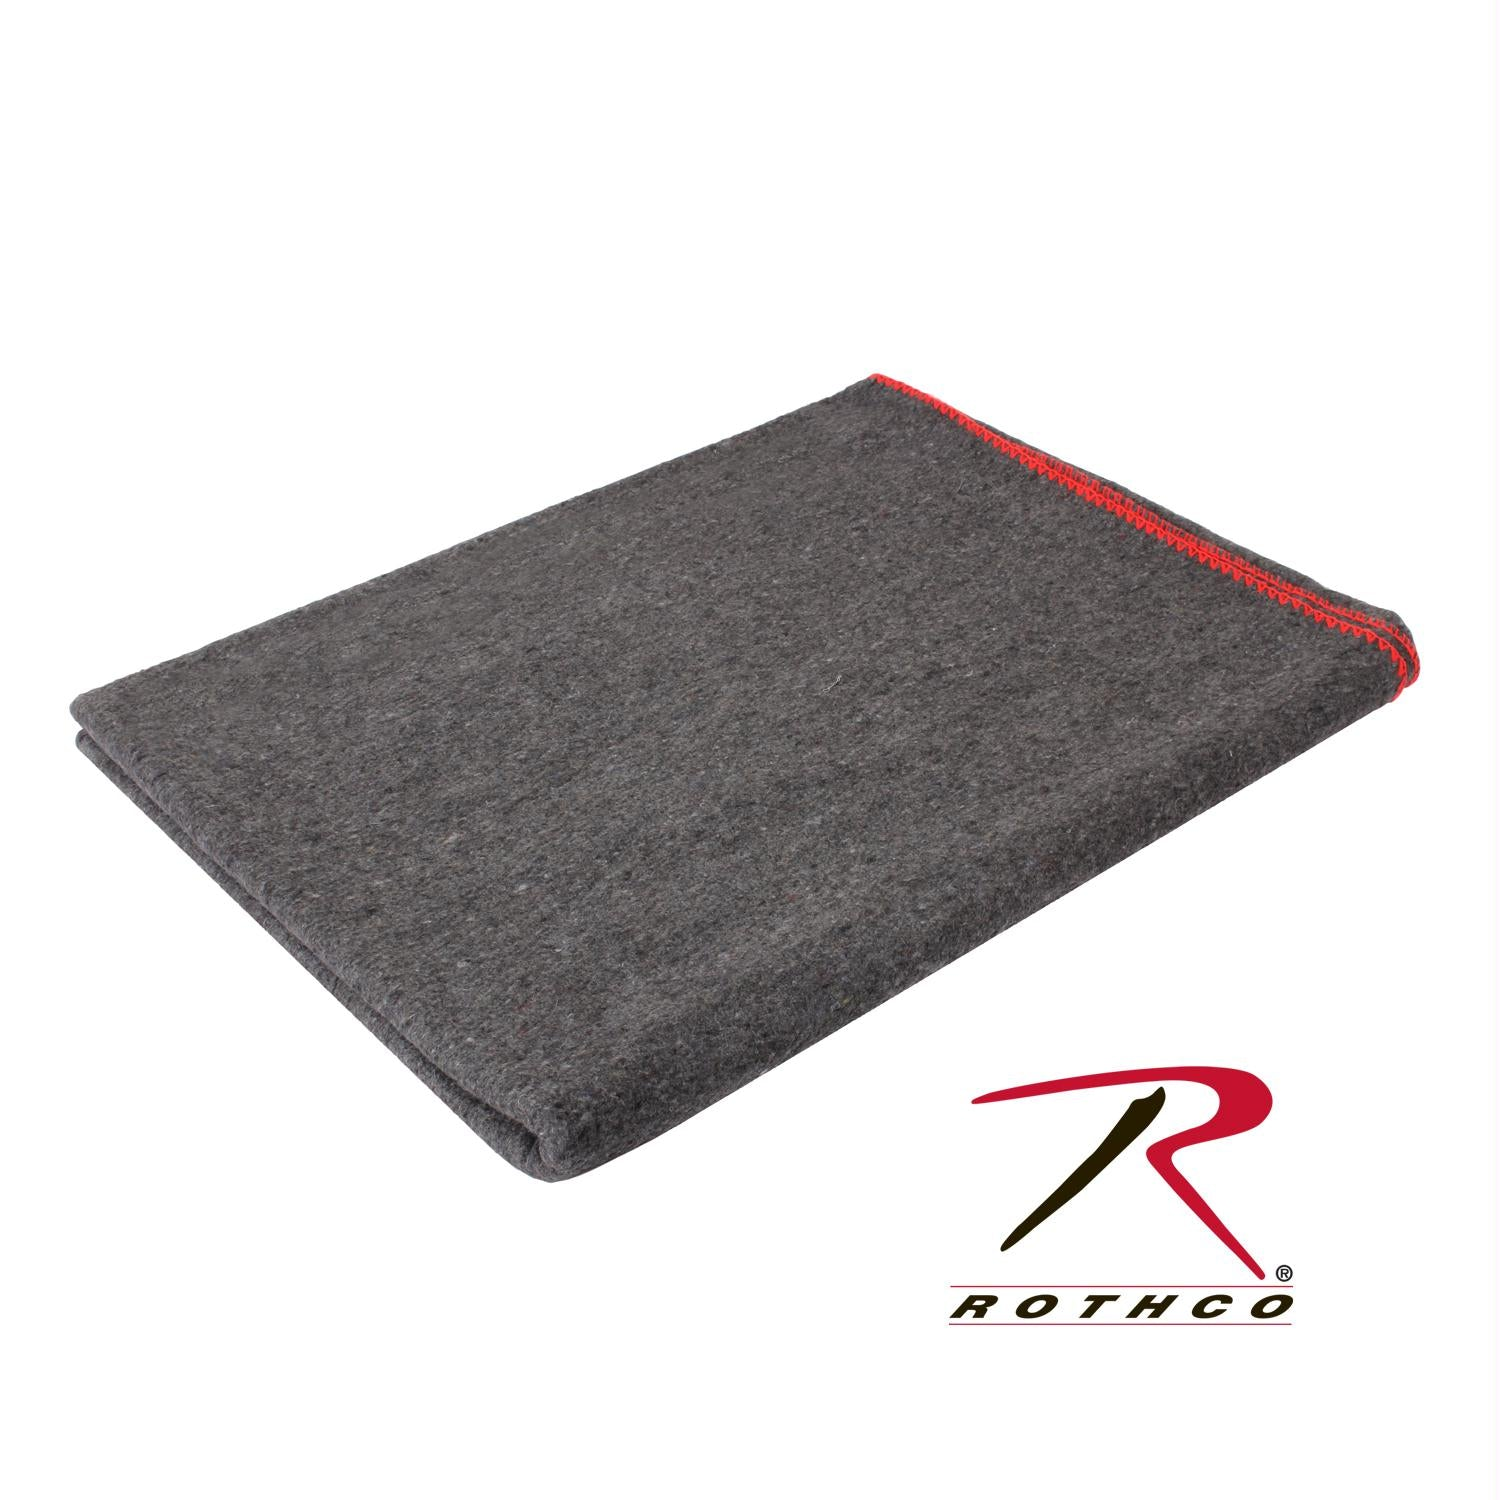 Rothco Rescue Survival Blanket